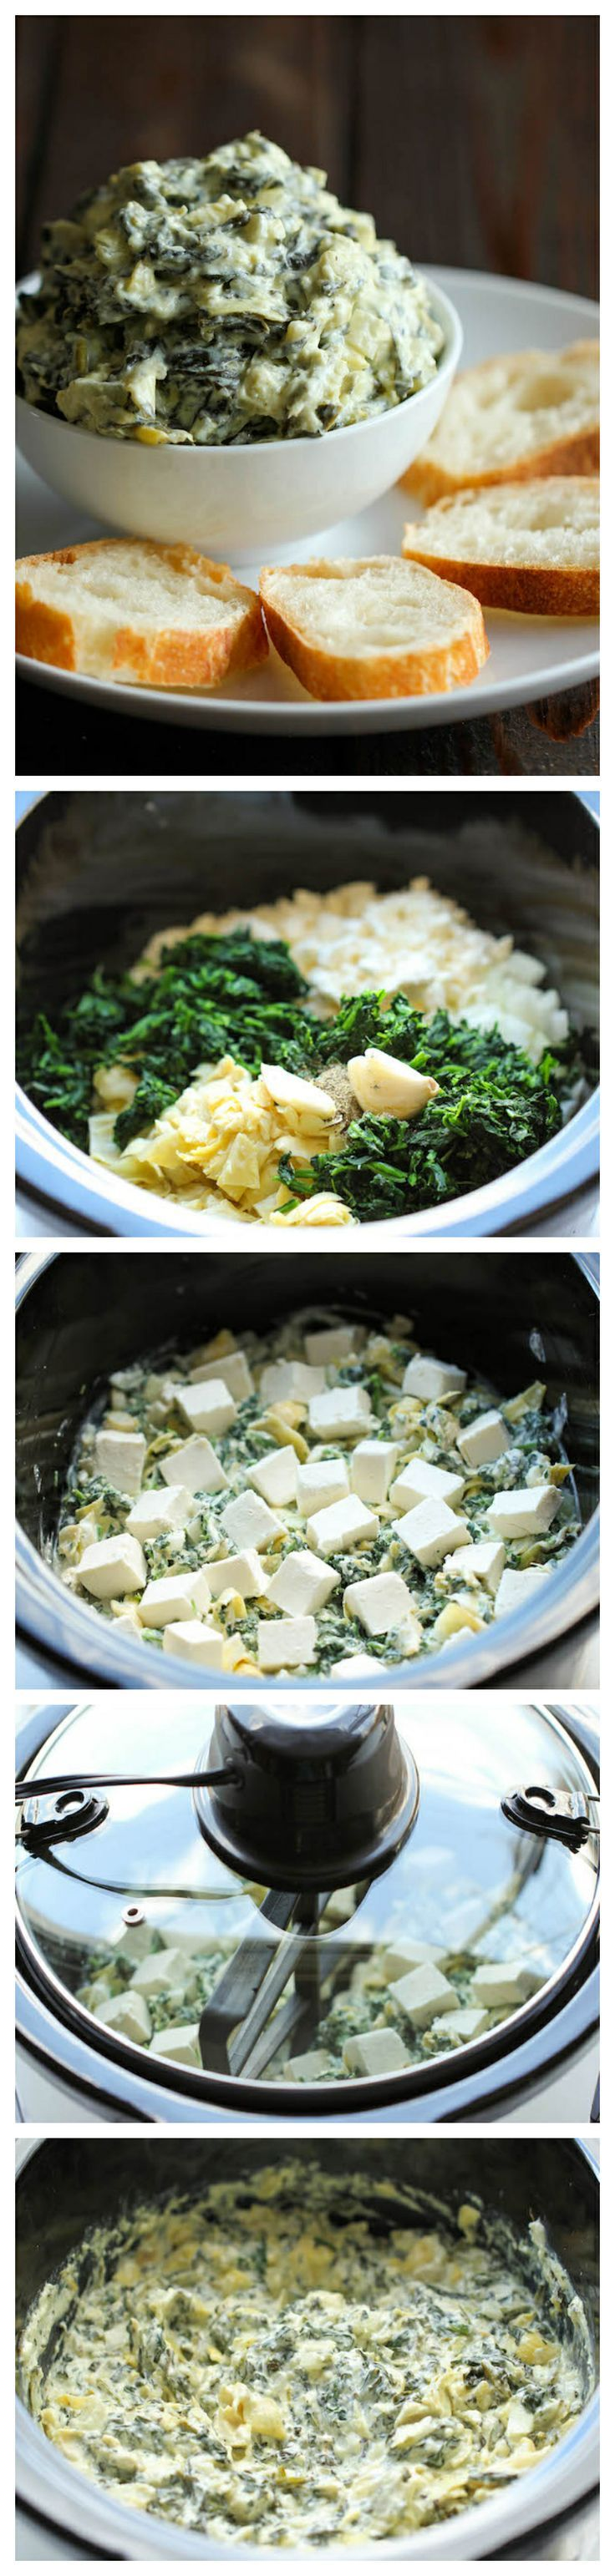 For parties! SLOW COOK spinach artichoke dip